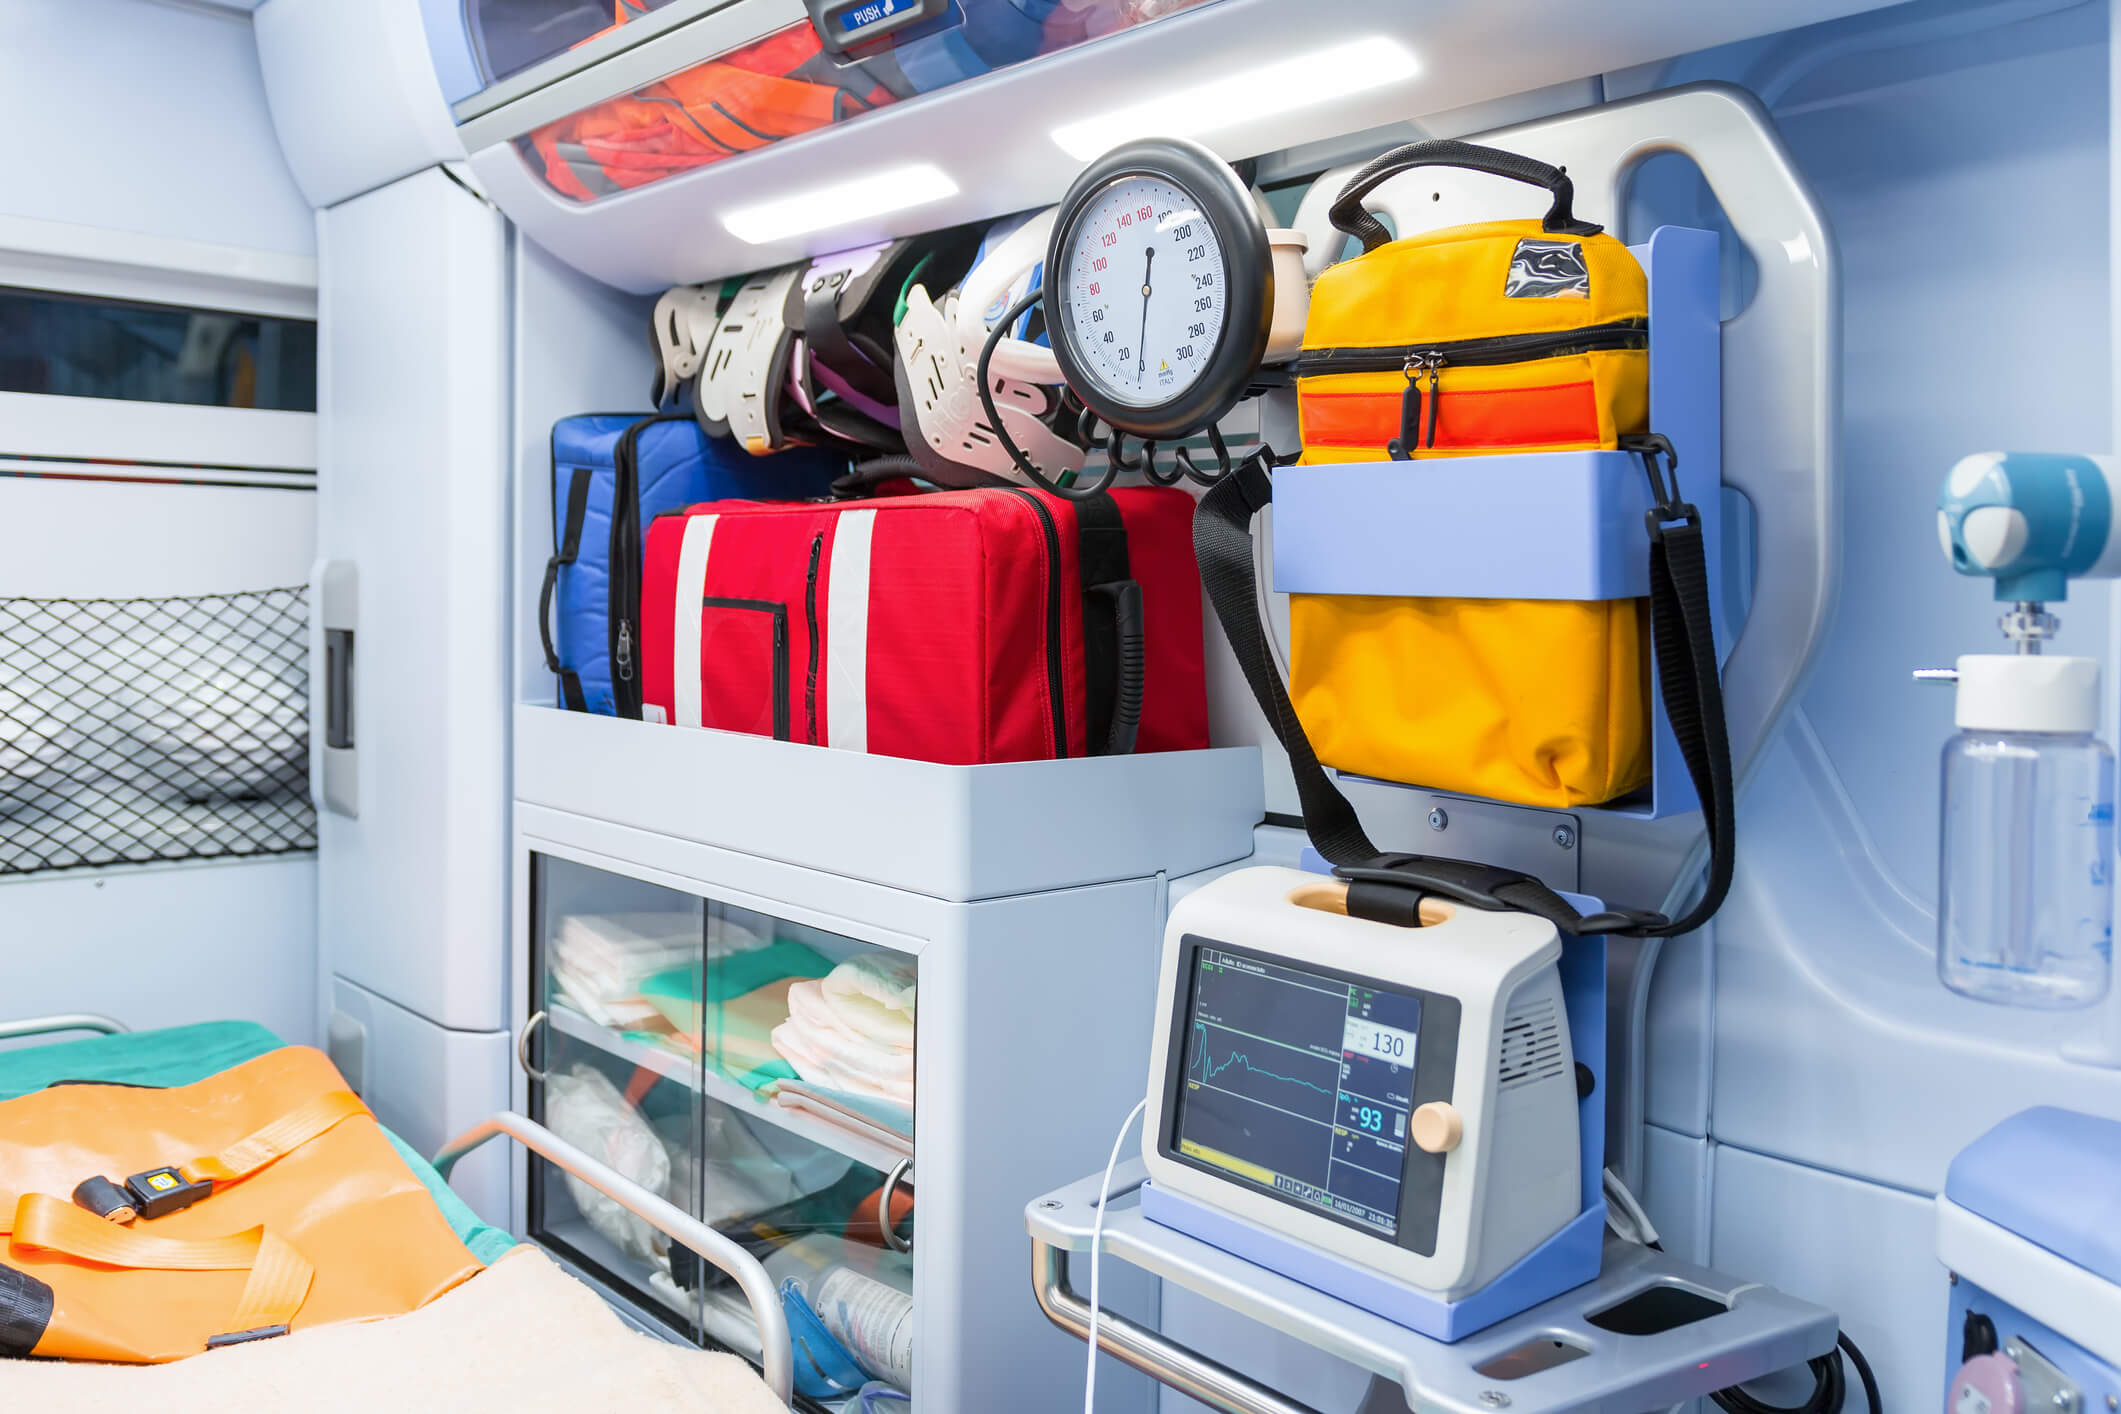 What to Look for Before Buying an Emergency Portable Suction Device